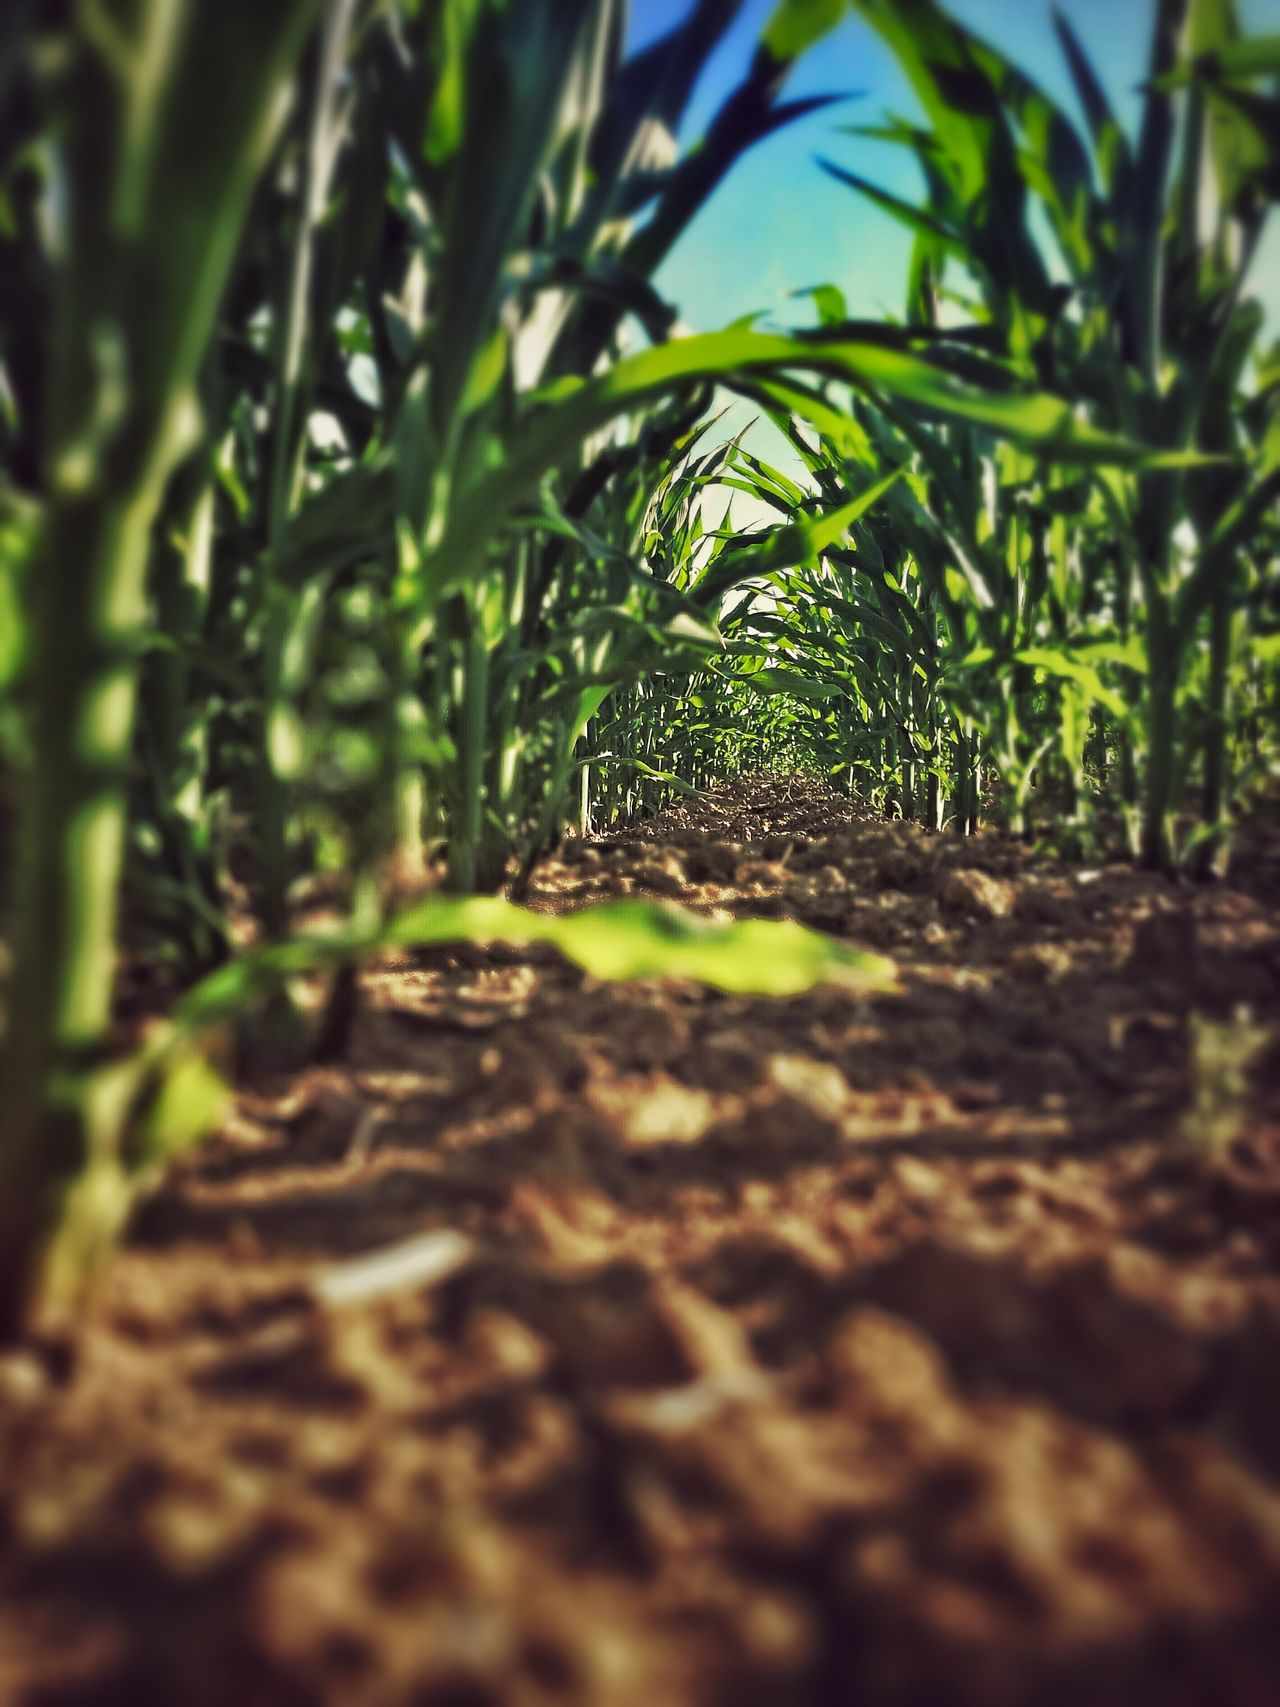 Growth Nature Leaf Farm Beauty In Nature Outdoors Green Color Field Way Corn Macro Tiny World Tiny Worlds Tiny World/Planet Looks Like A Tiny World